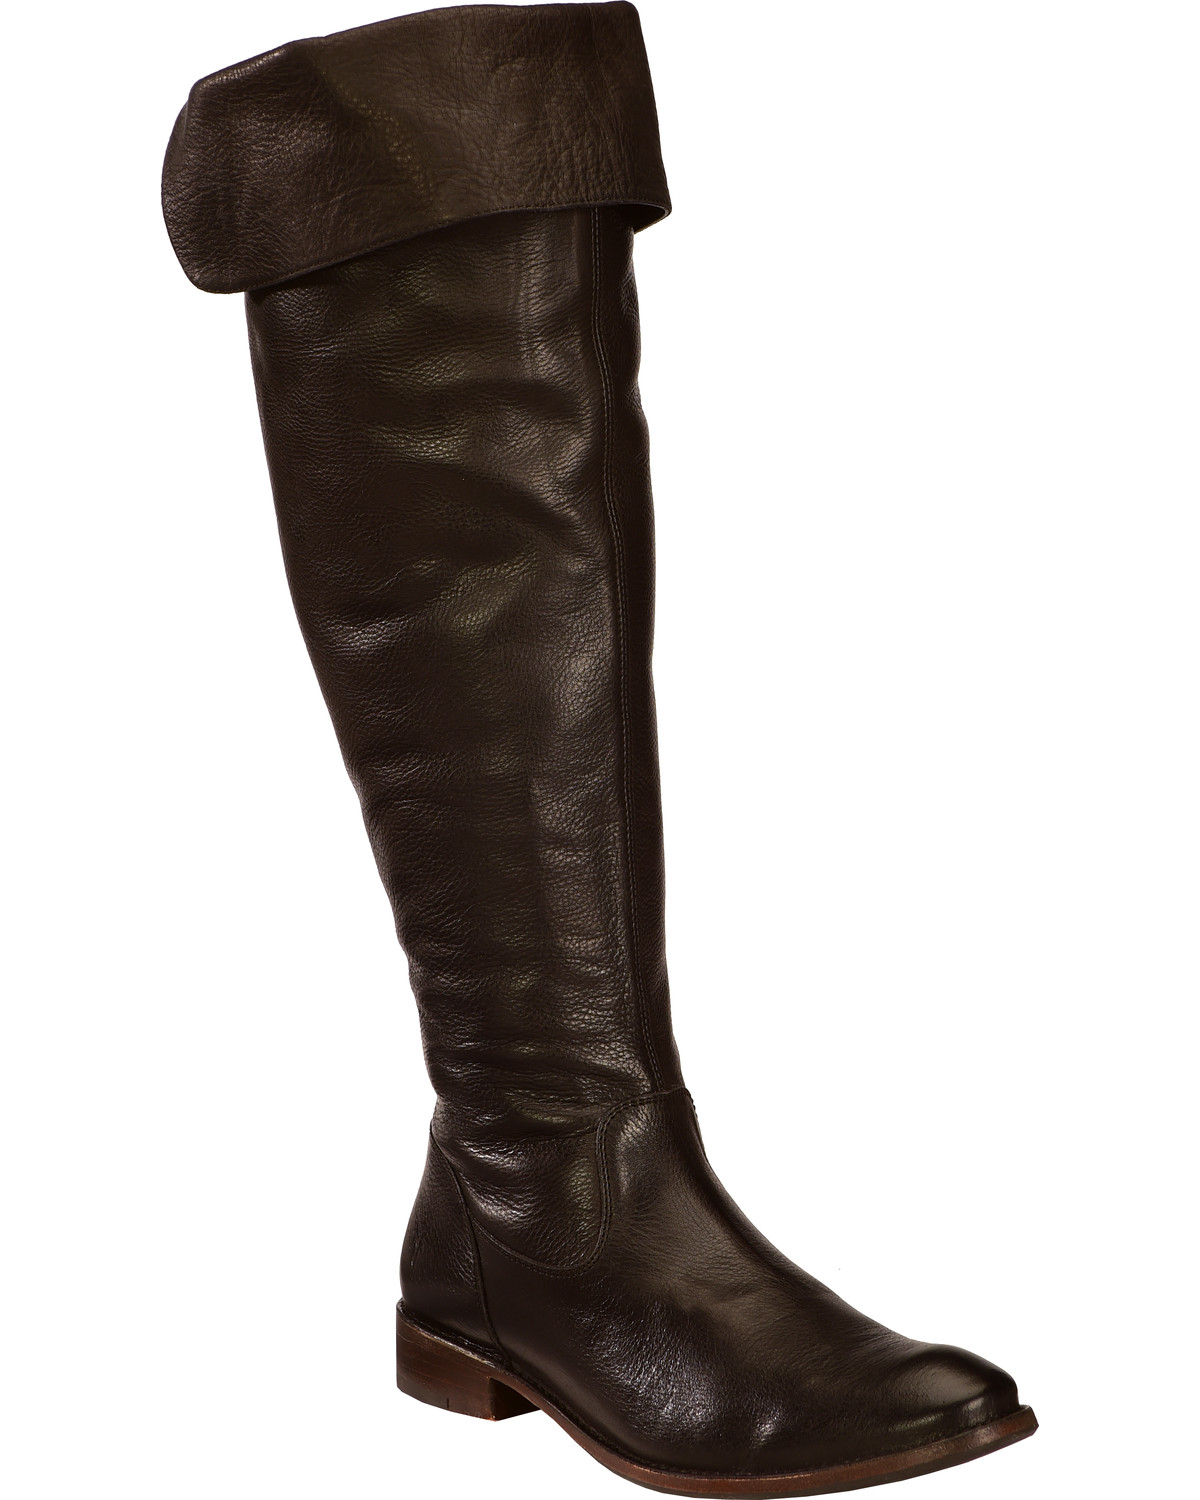 a886fe950ab Frye Women s Shirley Over The Knee Riding Boots - Round Toe